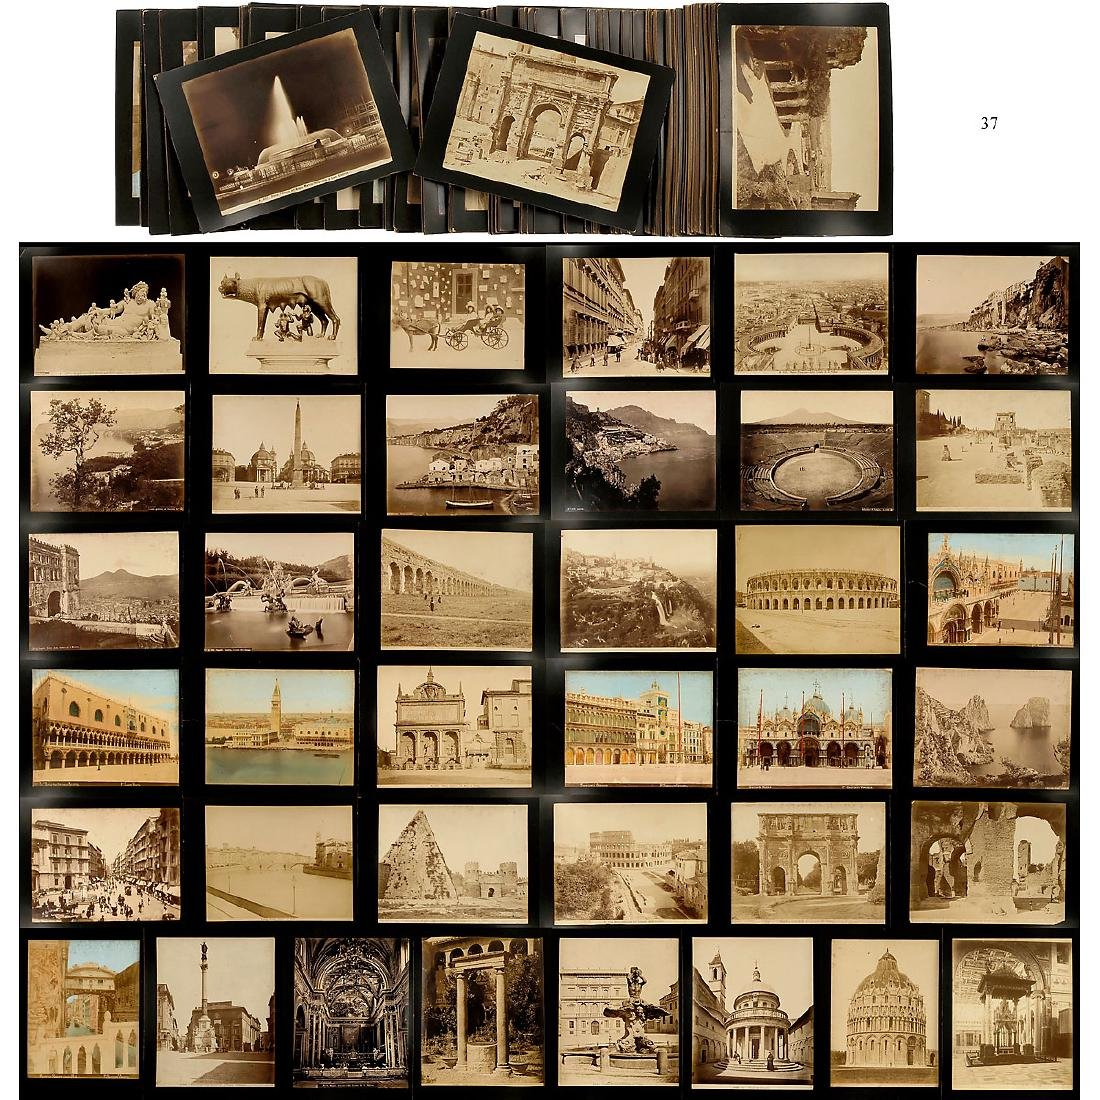 Approx. 160 Original Vintage Pictures for Viewer, c.